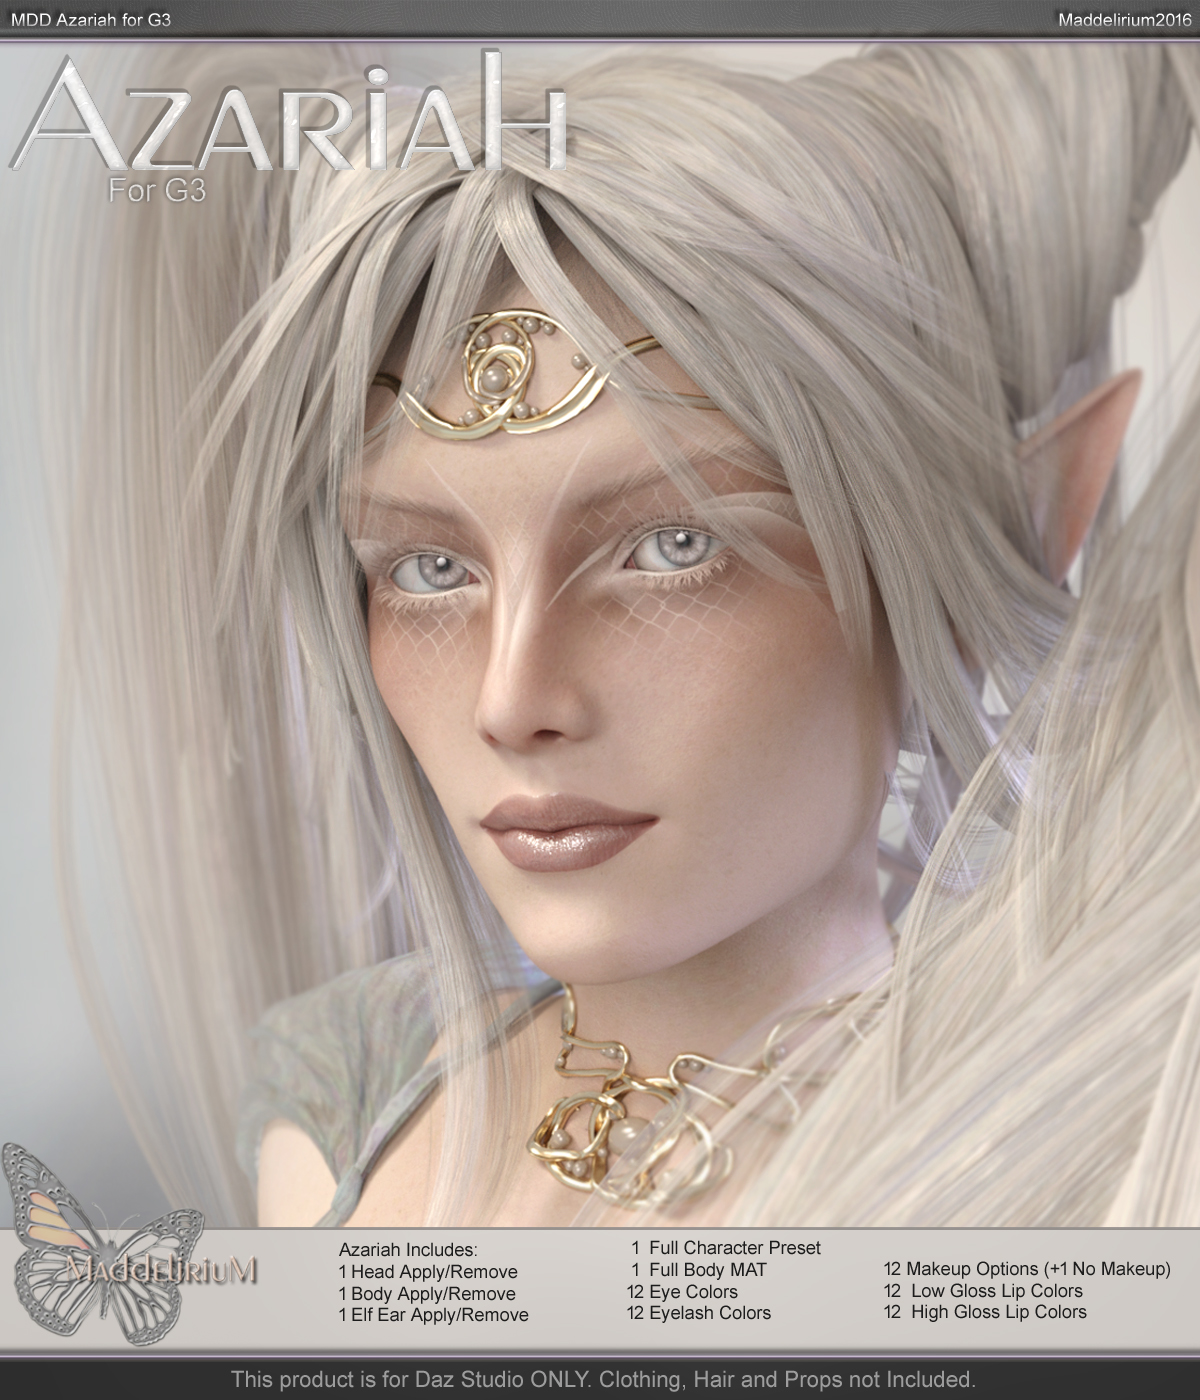 MDD Azariah for G3